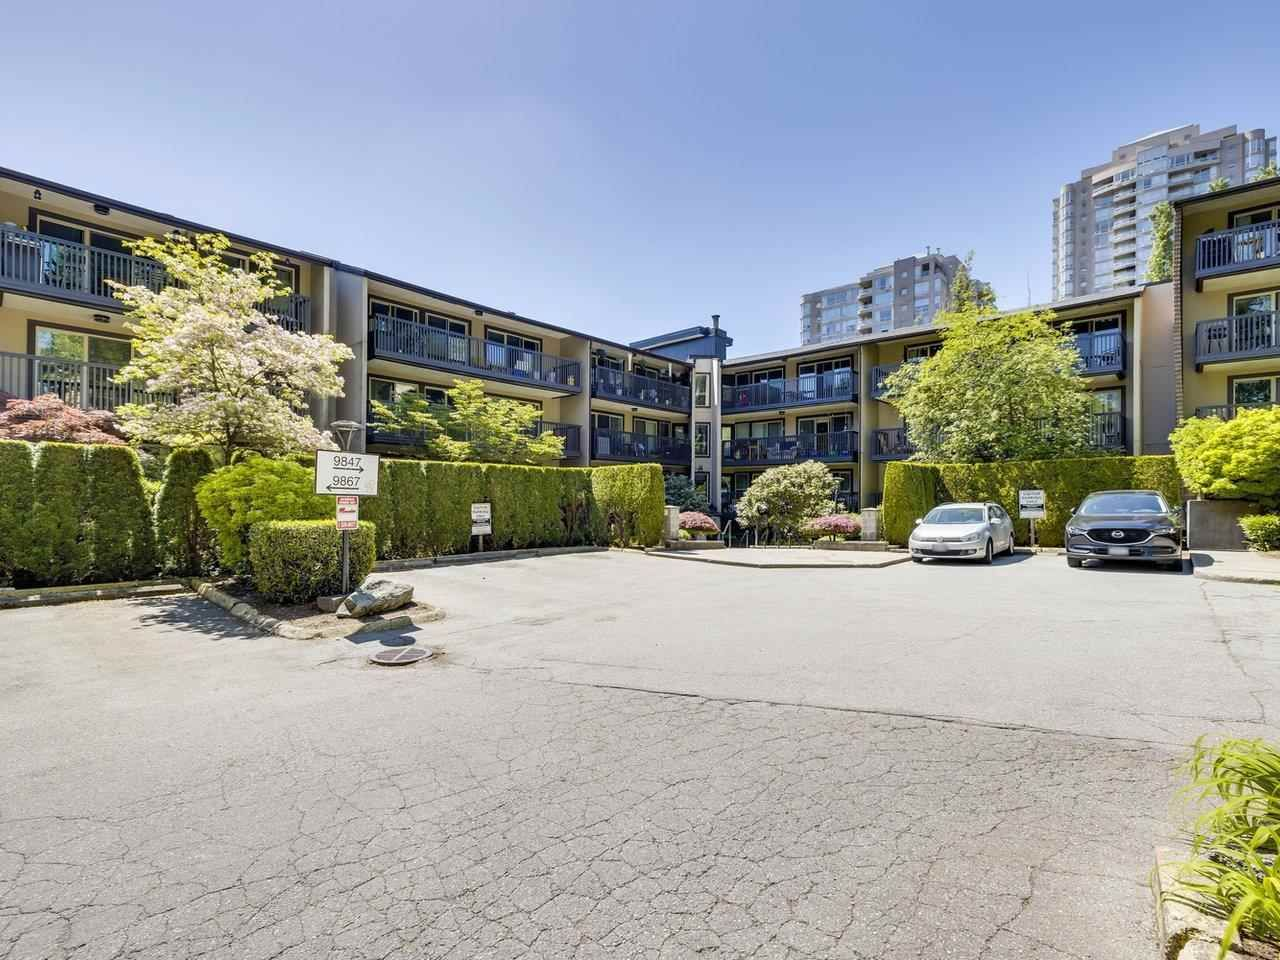 """Main Photo: 108 9847 MANCHESTER Drive in Burnaby: Cariboo Condo for sale in """"Barclay Woods"""" (Burnaby North)  : MLS®# R2580881"""